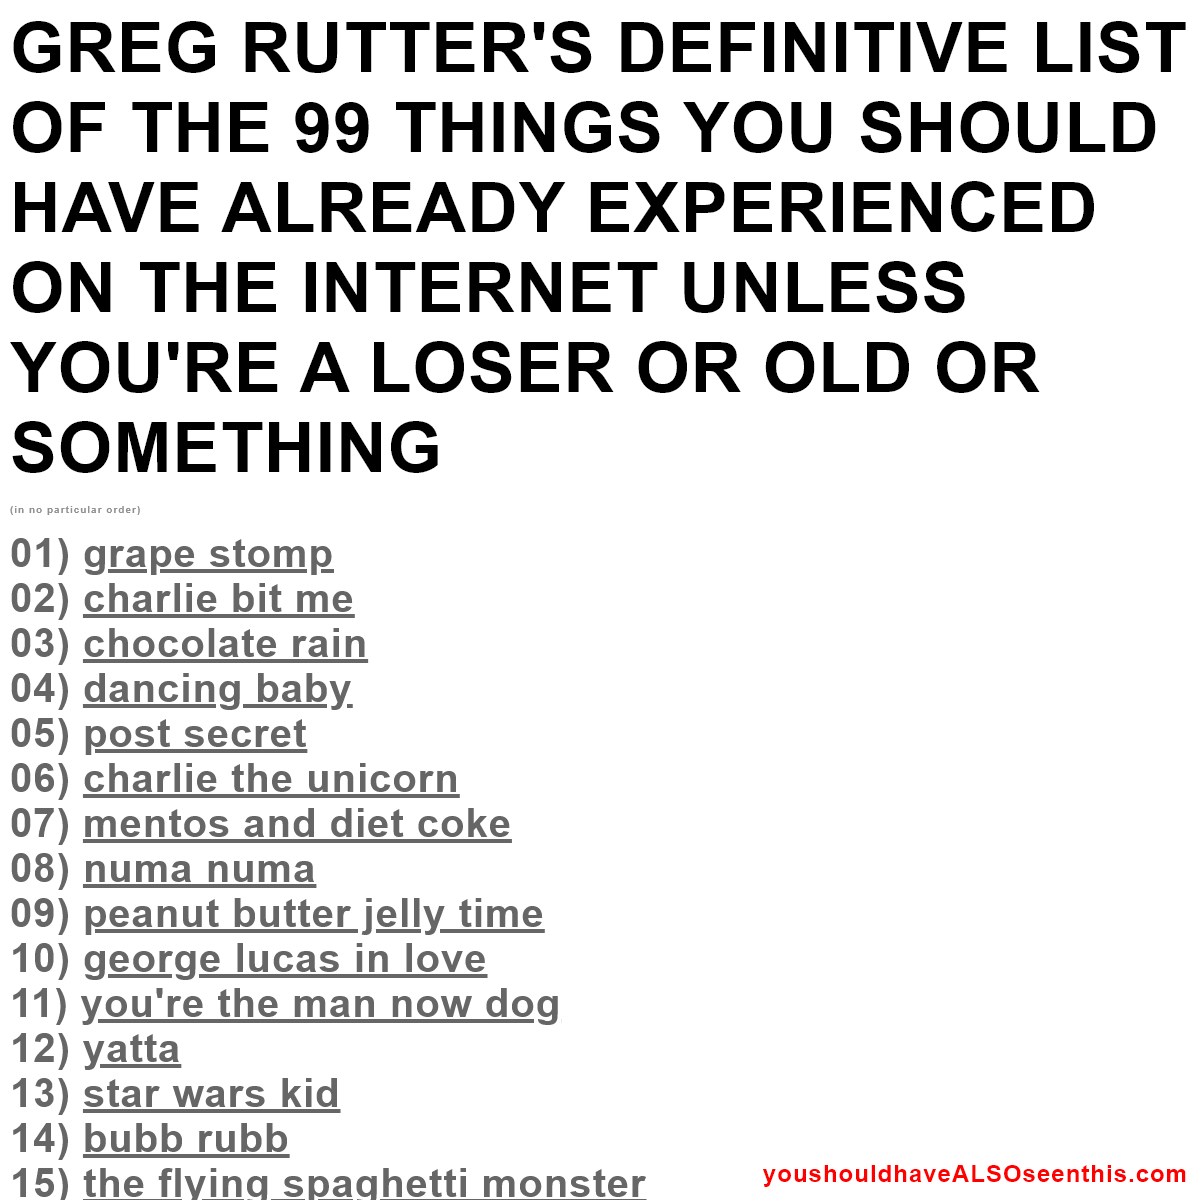 Greg Rutter`s Definitive List of The 99 Things You Should Have Already Experienced On The Internet Unless You`re a Loser or Old